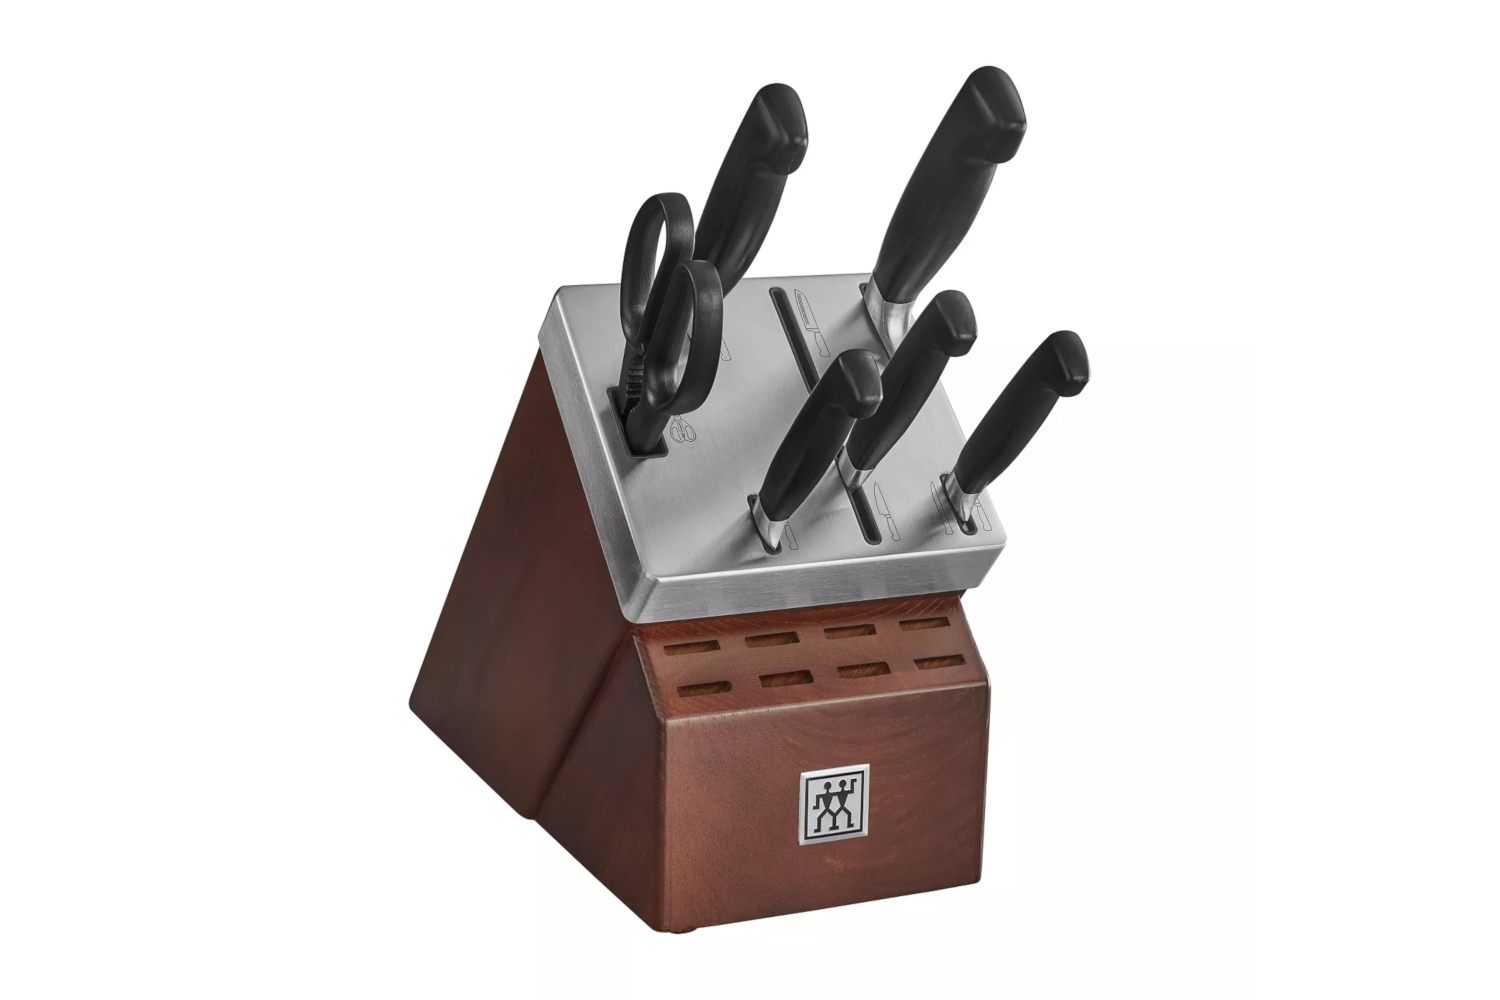 Zwilling Four Star 7 Piece Self Sharpening Knife Block Set